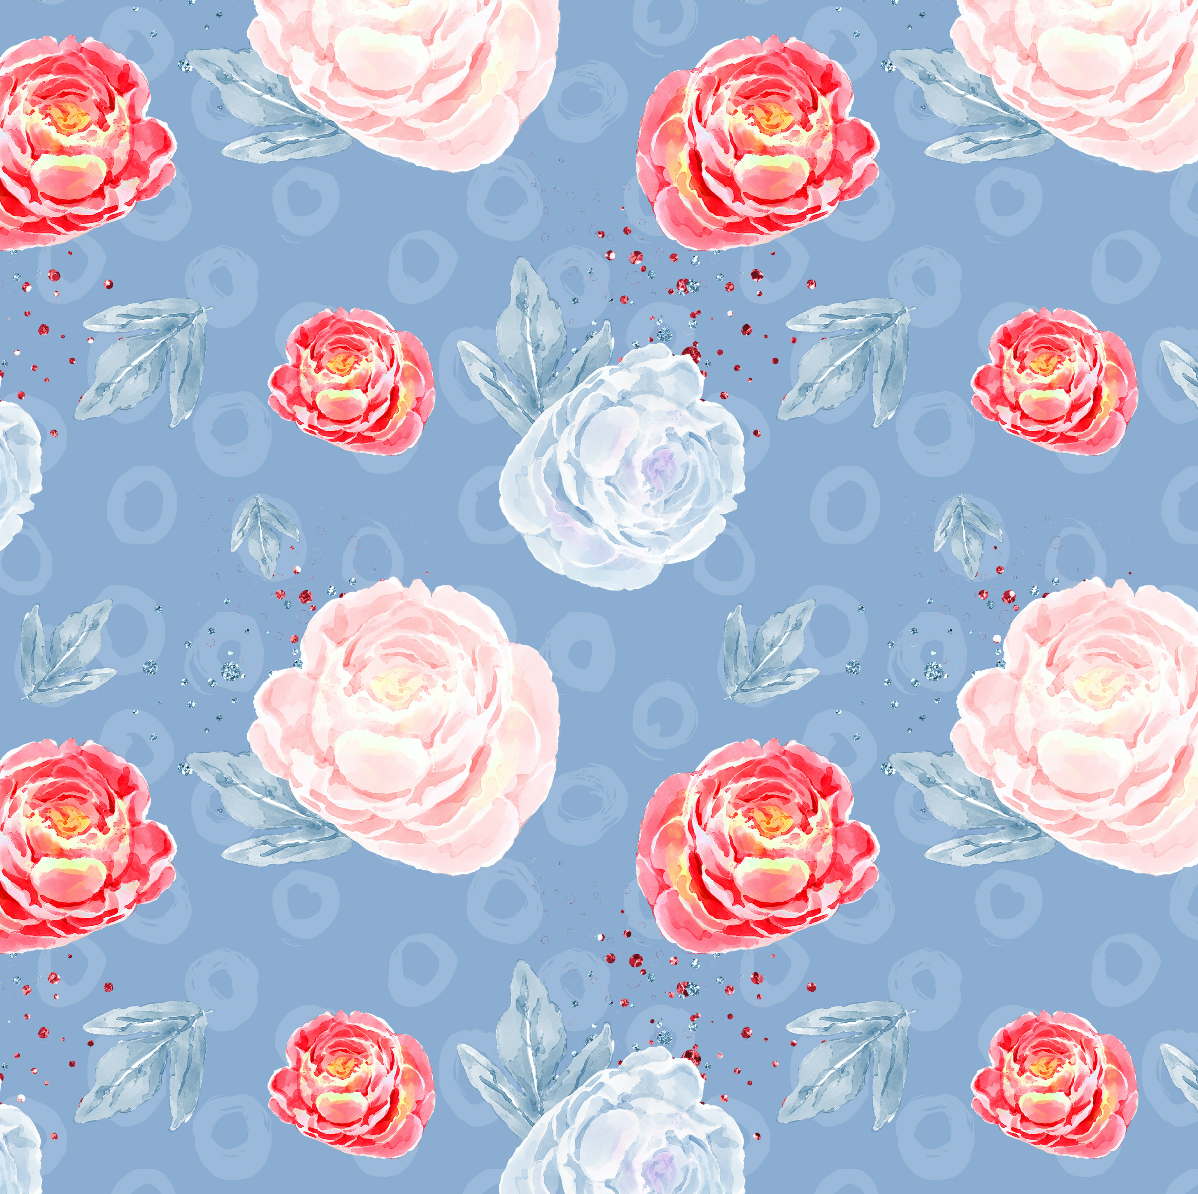 PRE ORDER - Mary Poppins Blue Floral - Digital Fabric Print